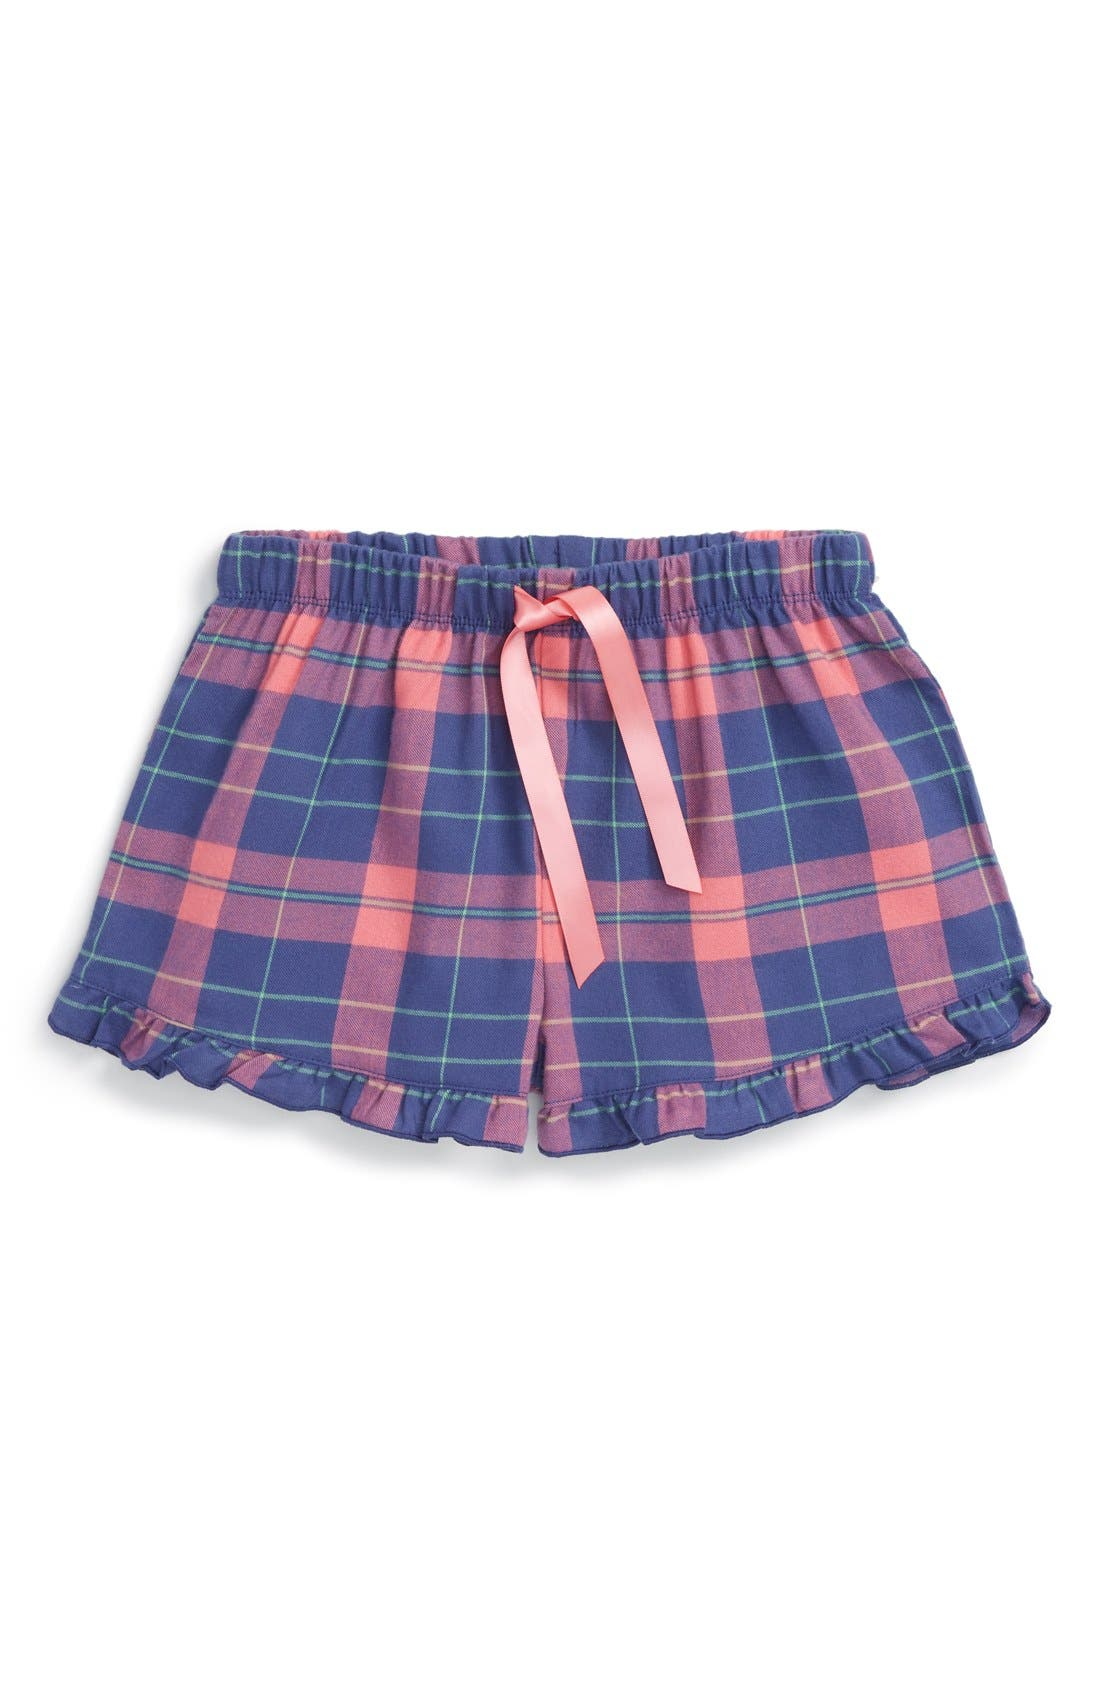 Flannel Shorts,                         Main,                         color, 410